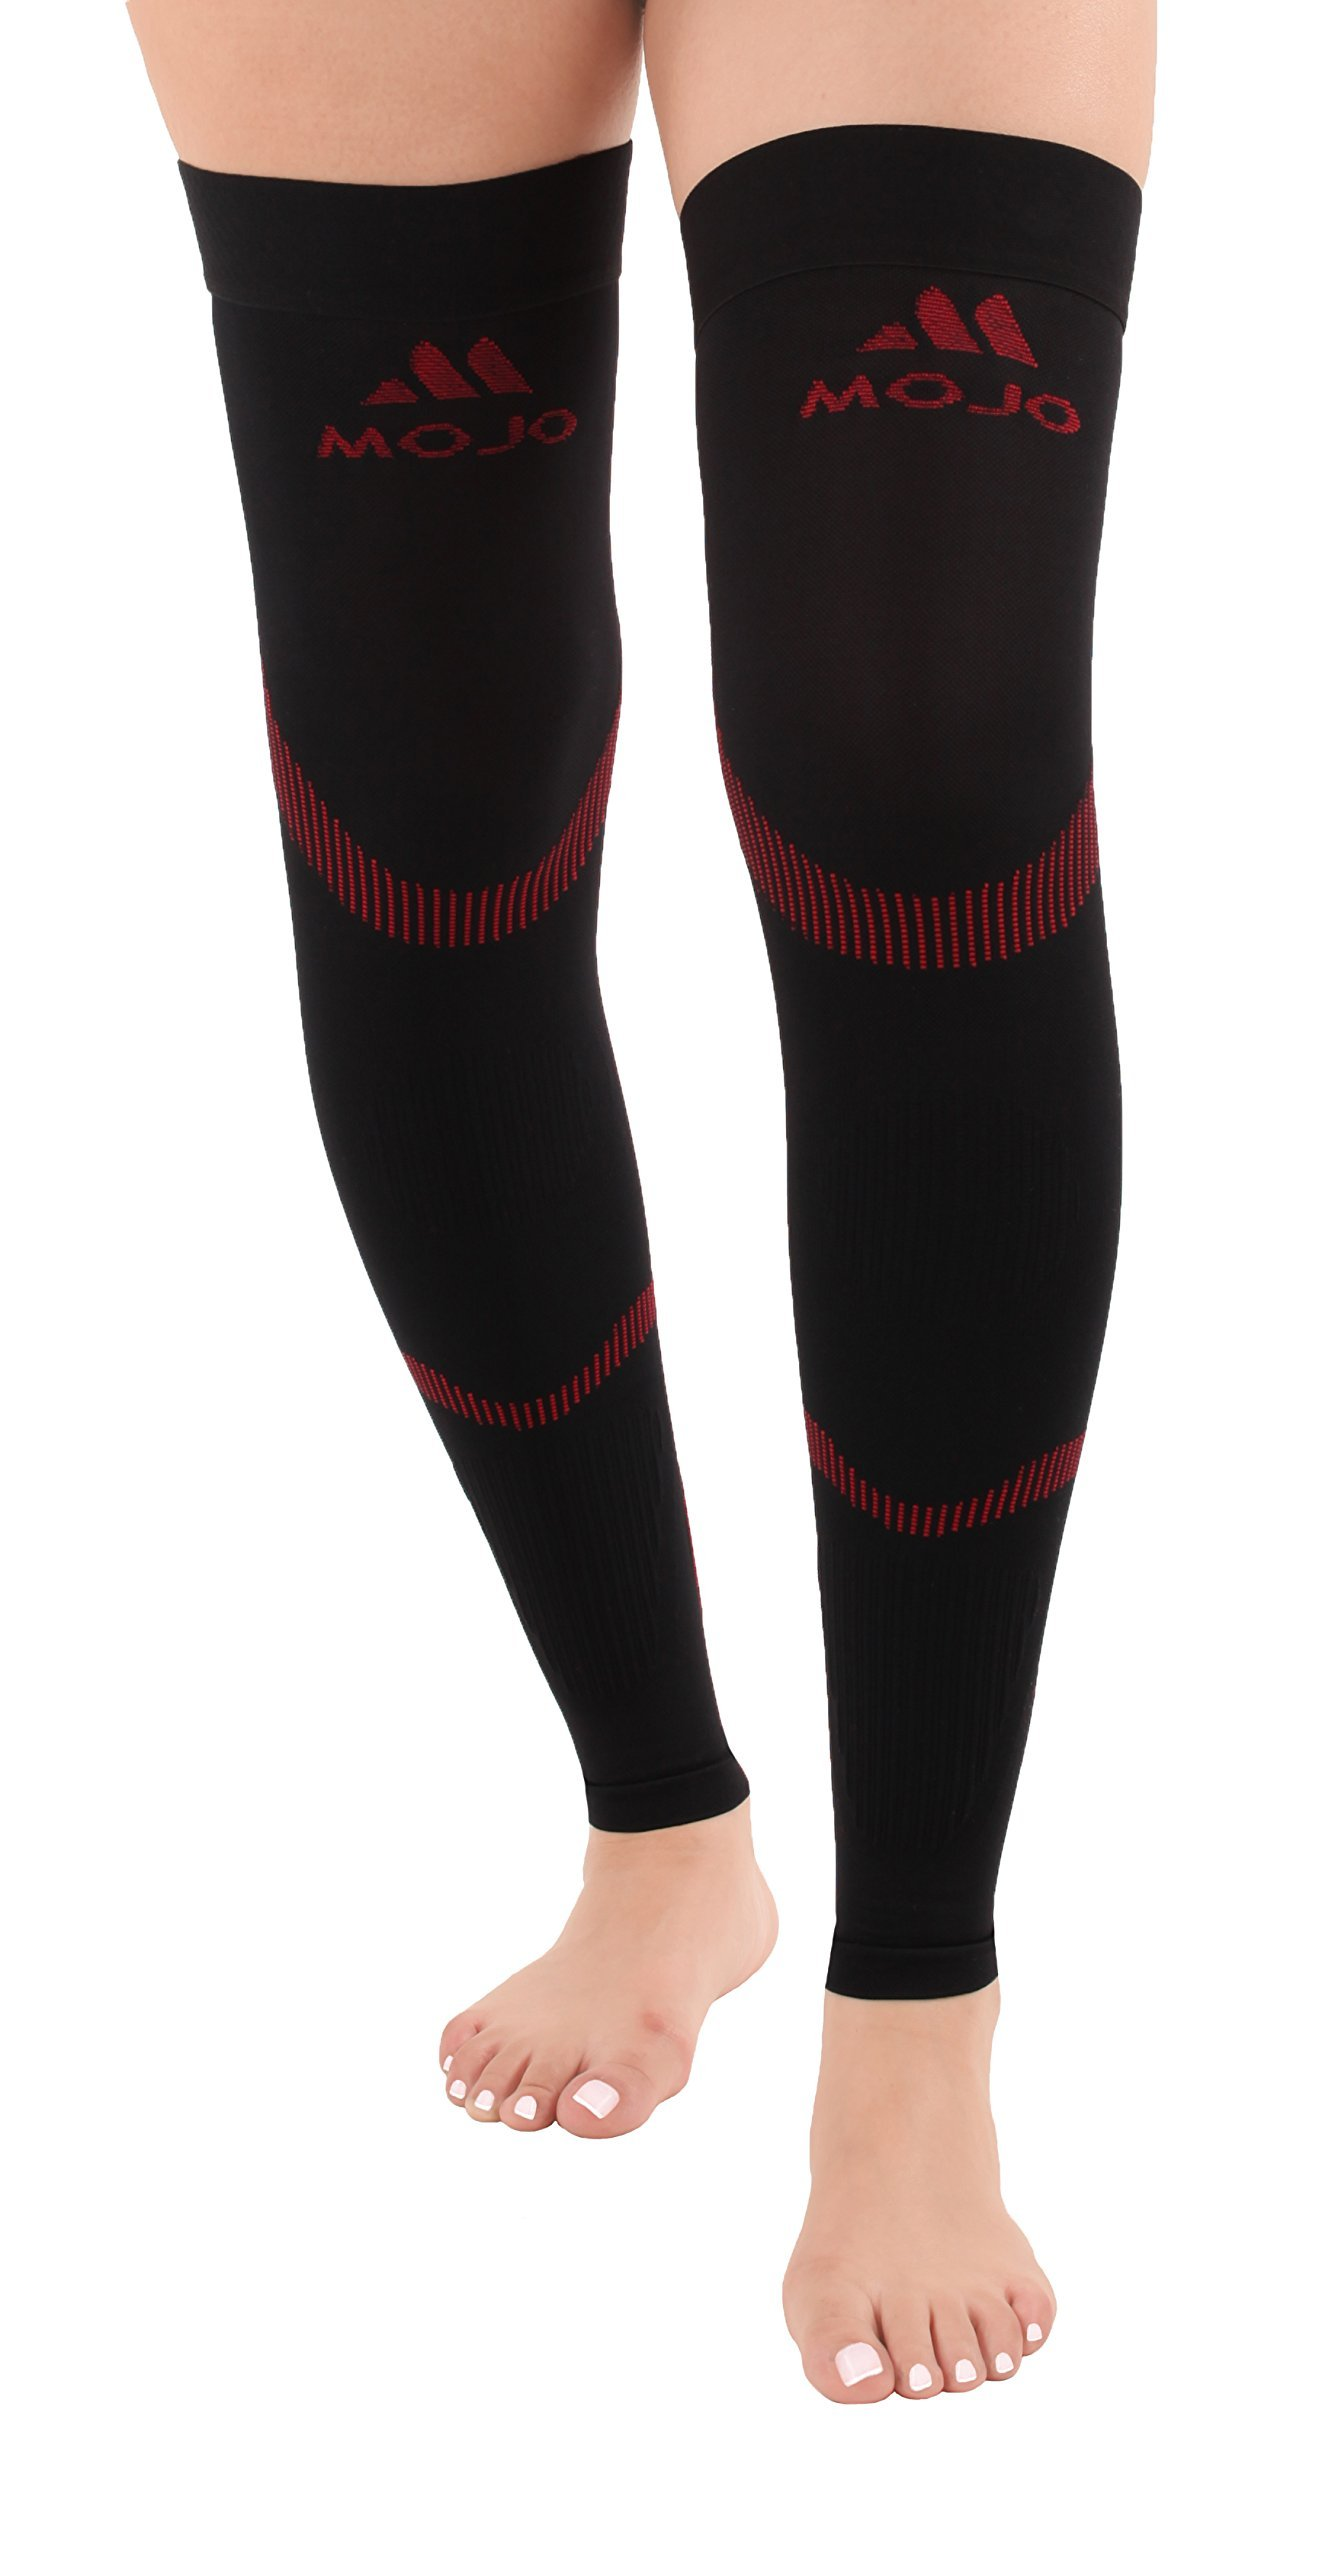 Mojo Sports Compression Stockings - Graduated Compression Sleeve - Thigh Hi Length Recovery Garment, 20-30mmHg Medical Support - Treats Hamstring and Quad Injuries - Unisex - XL, Black Red - A609BR4 by Mojo Compression socks